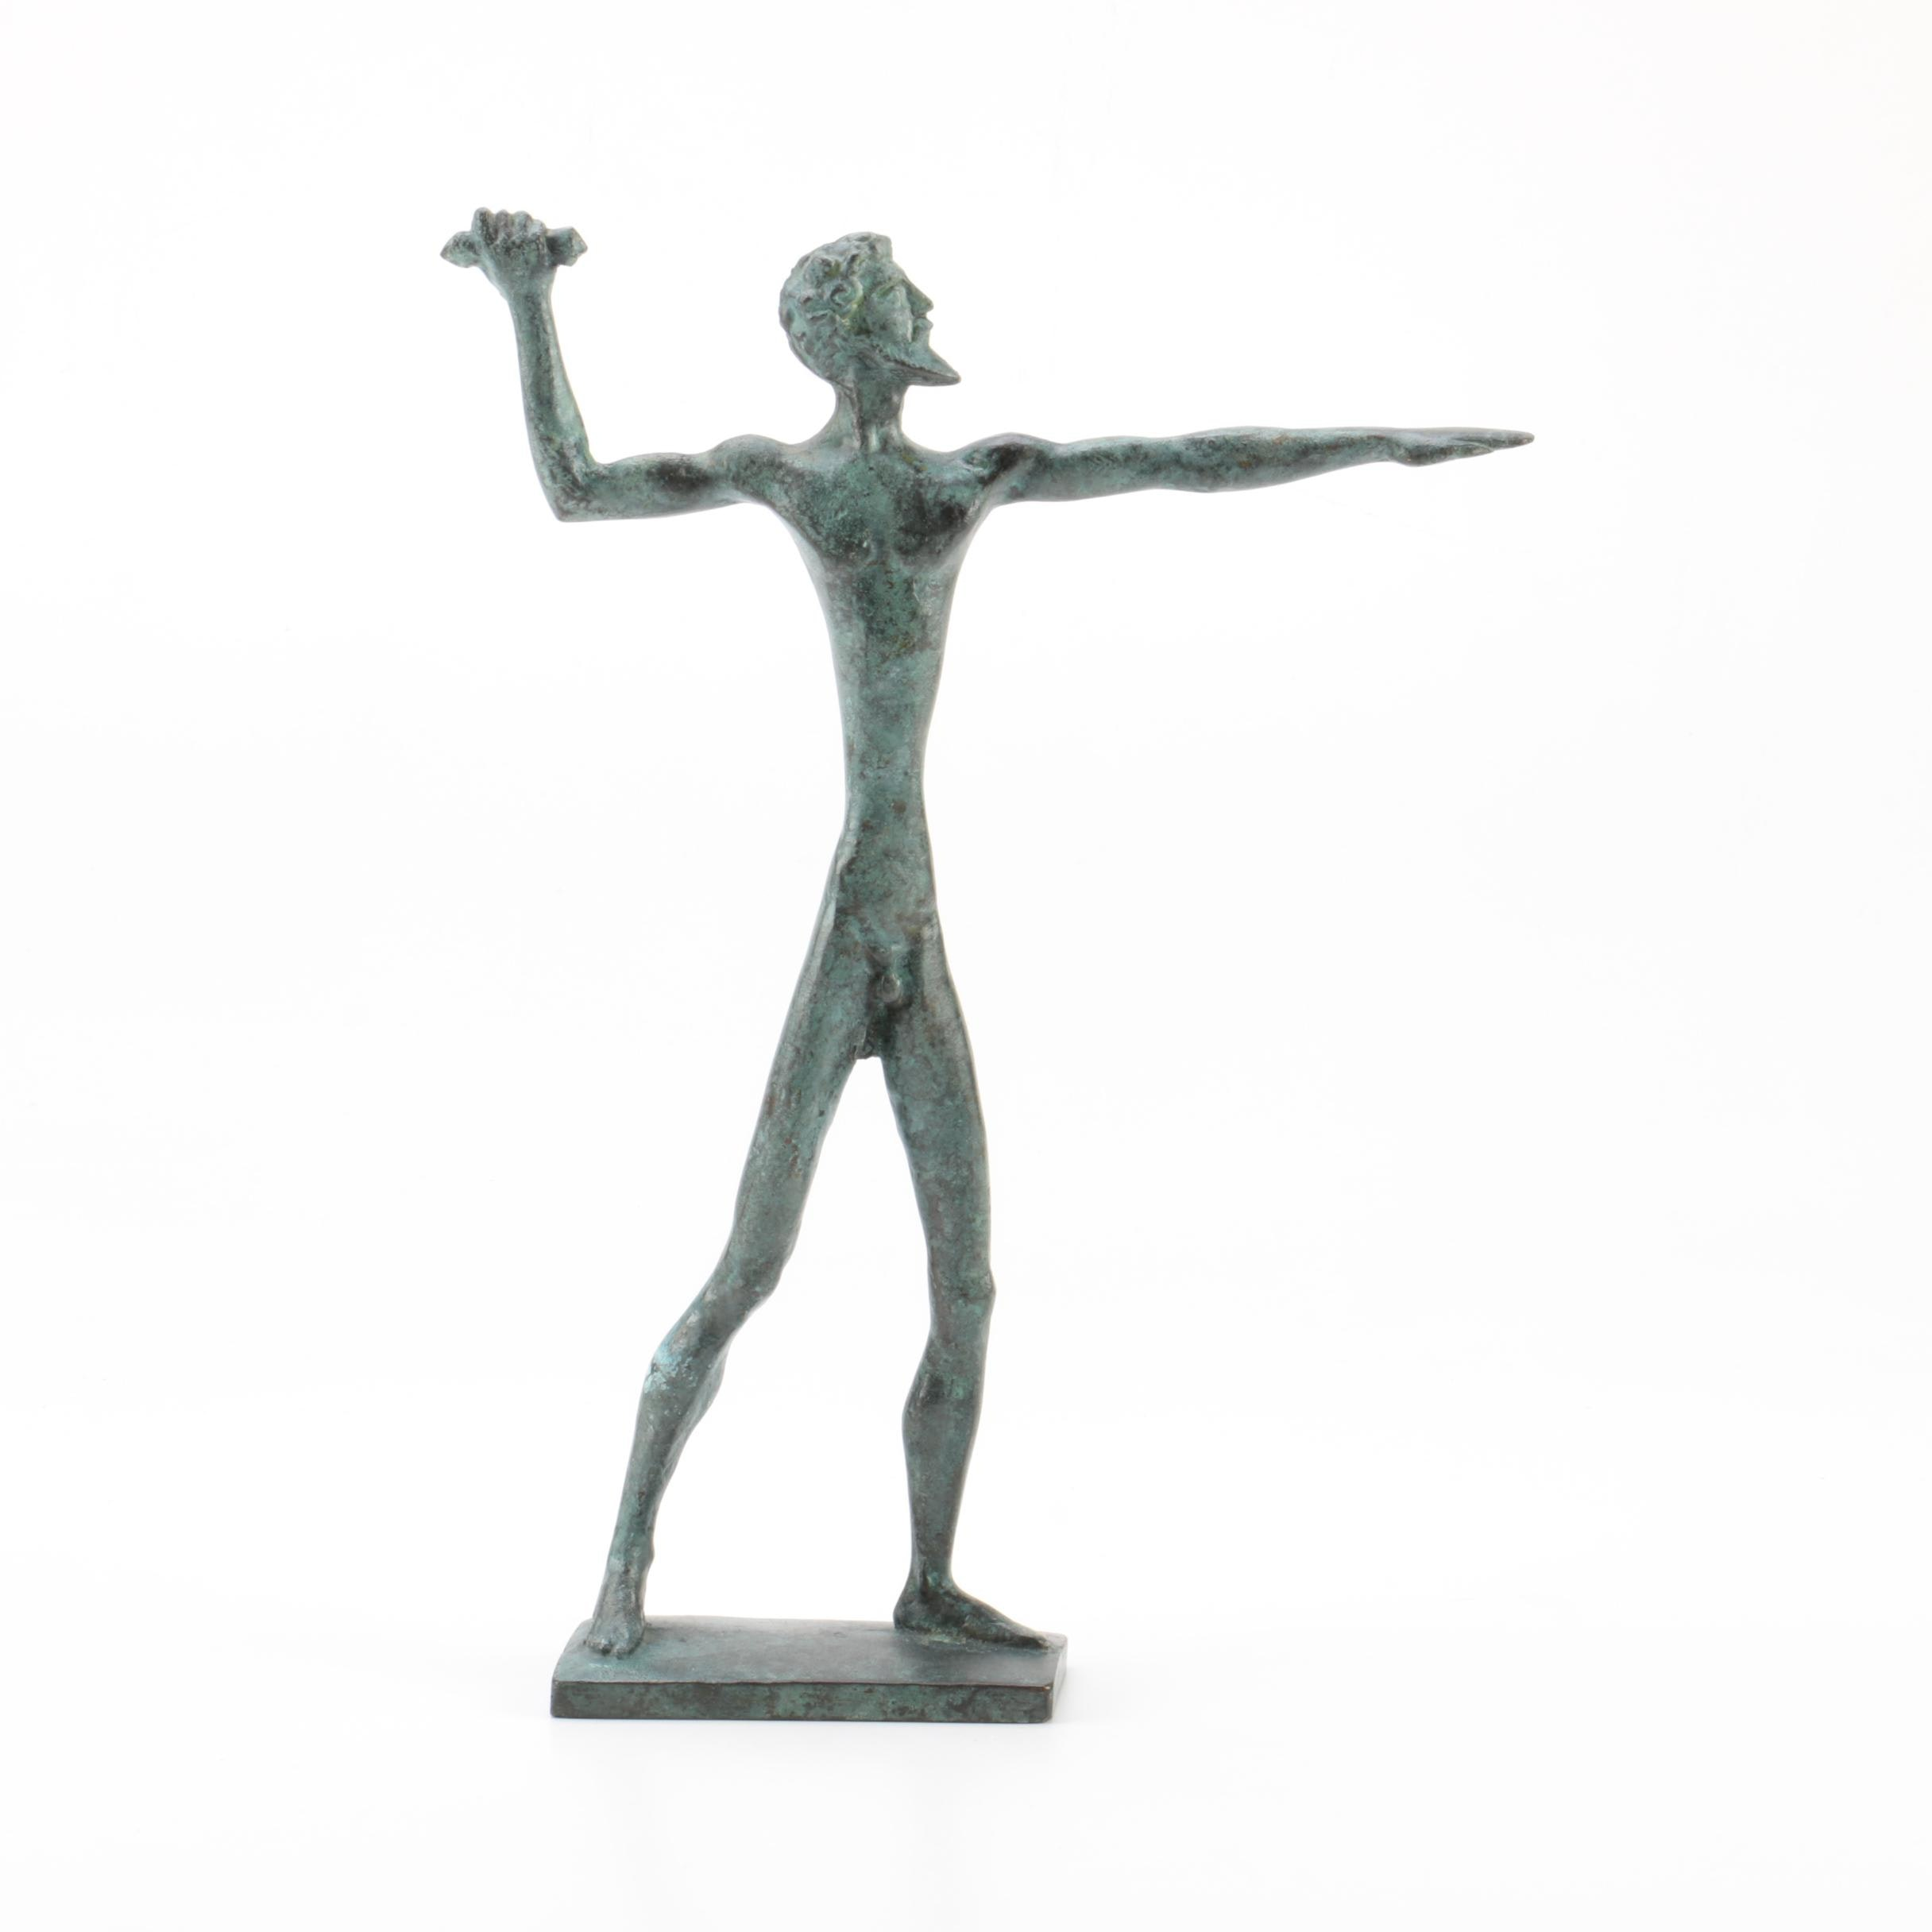 Reproduction Figure of Zeus with Lightning Bolt